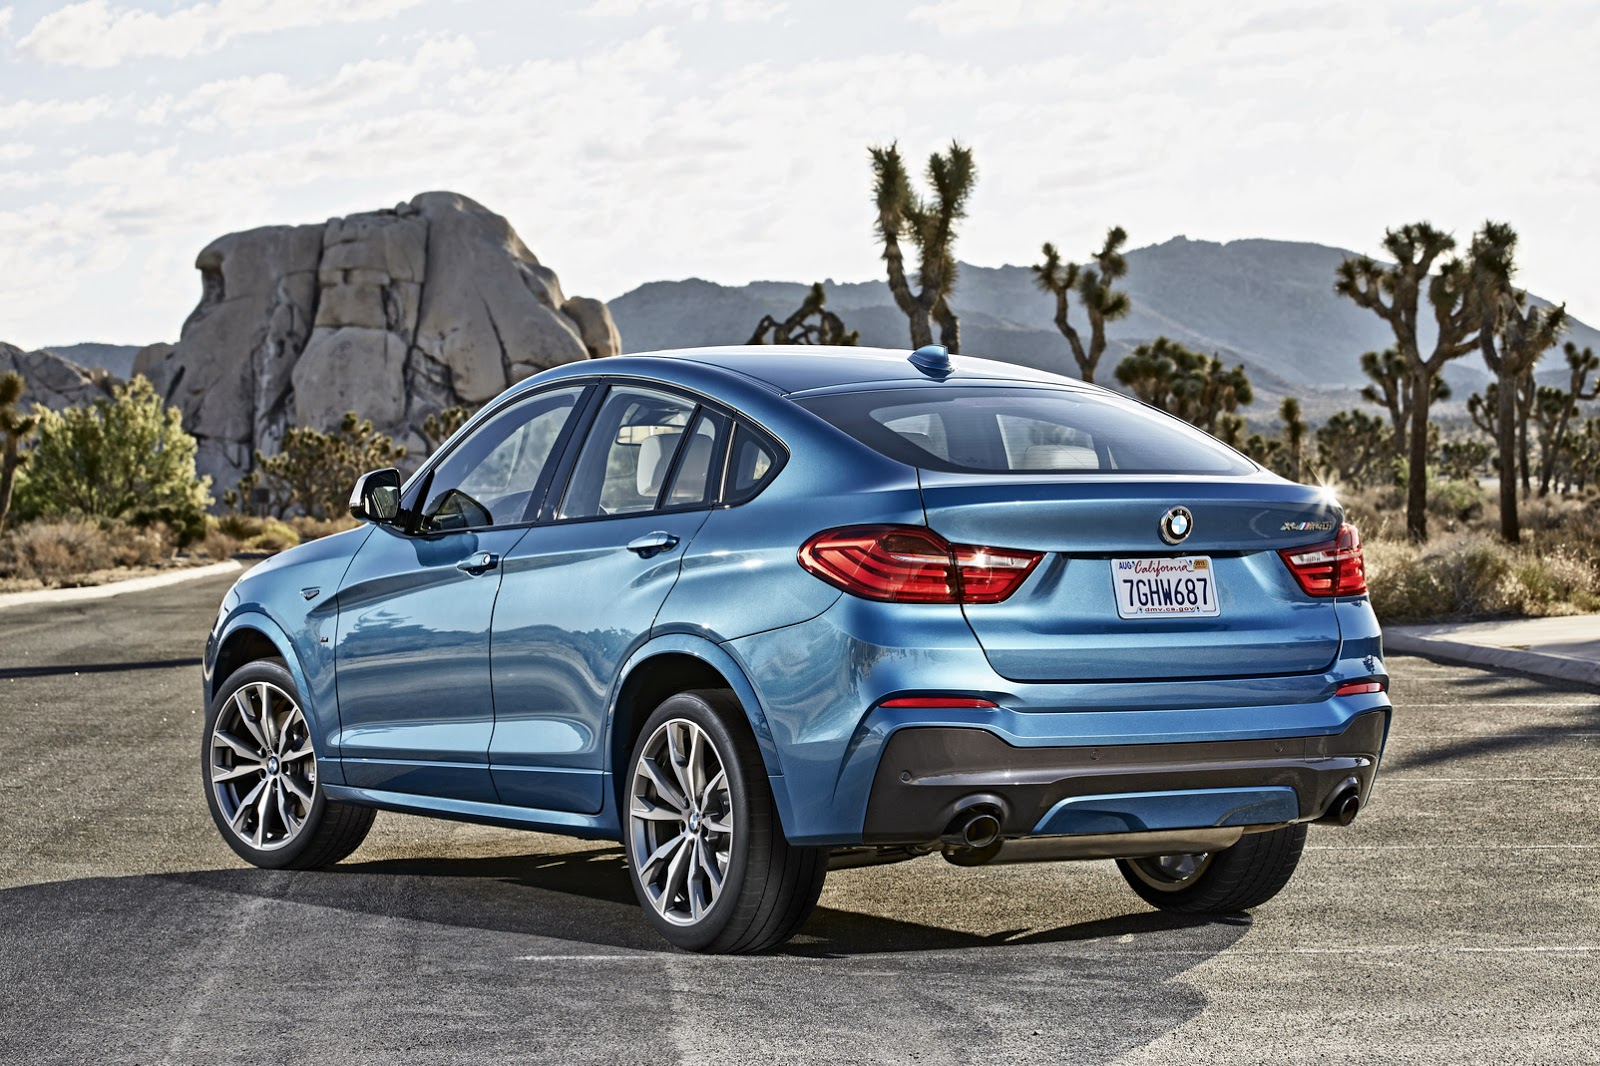 new bmw x4 m40i on sale next february likely has same engine as m2 90 pics carscoops. Black Bedroom Furniture Sets. Home Design Ideas